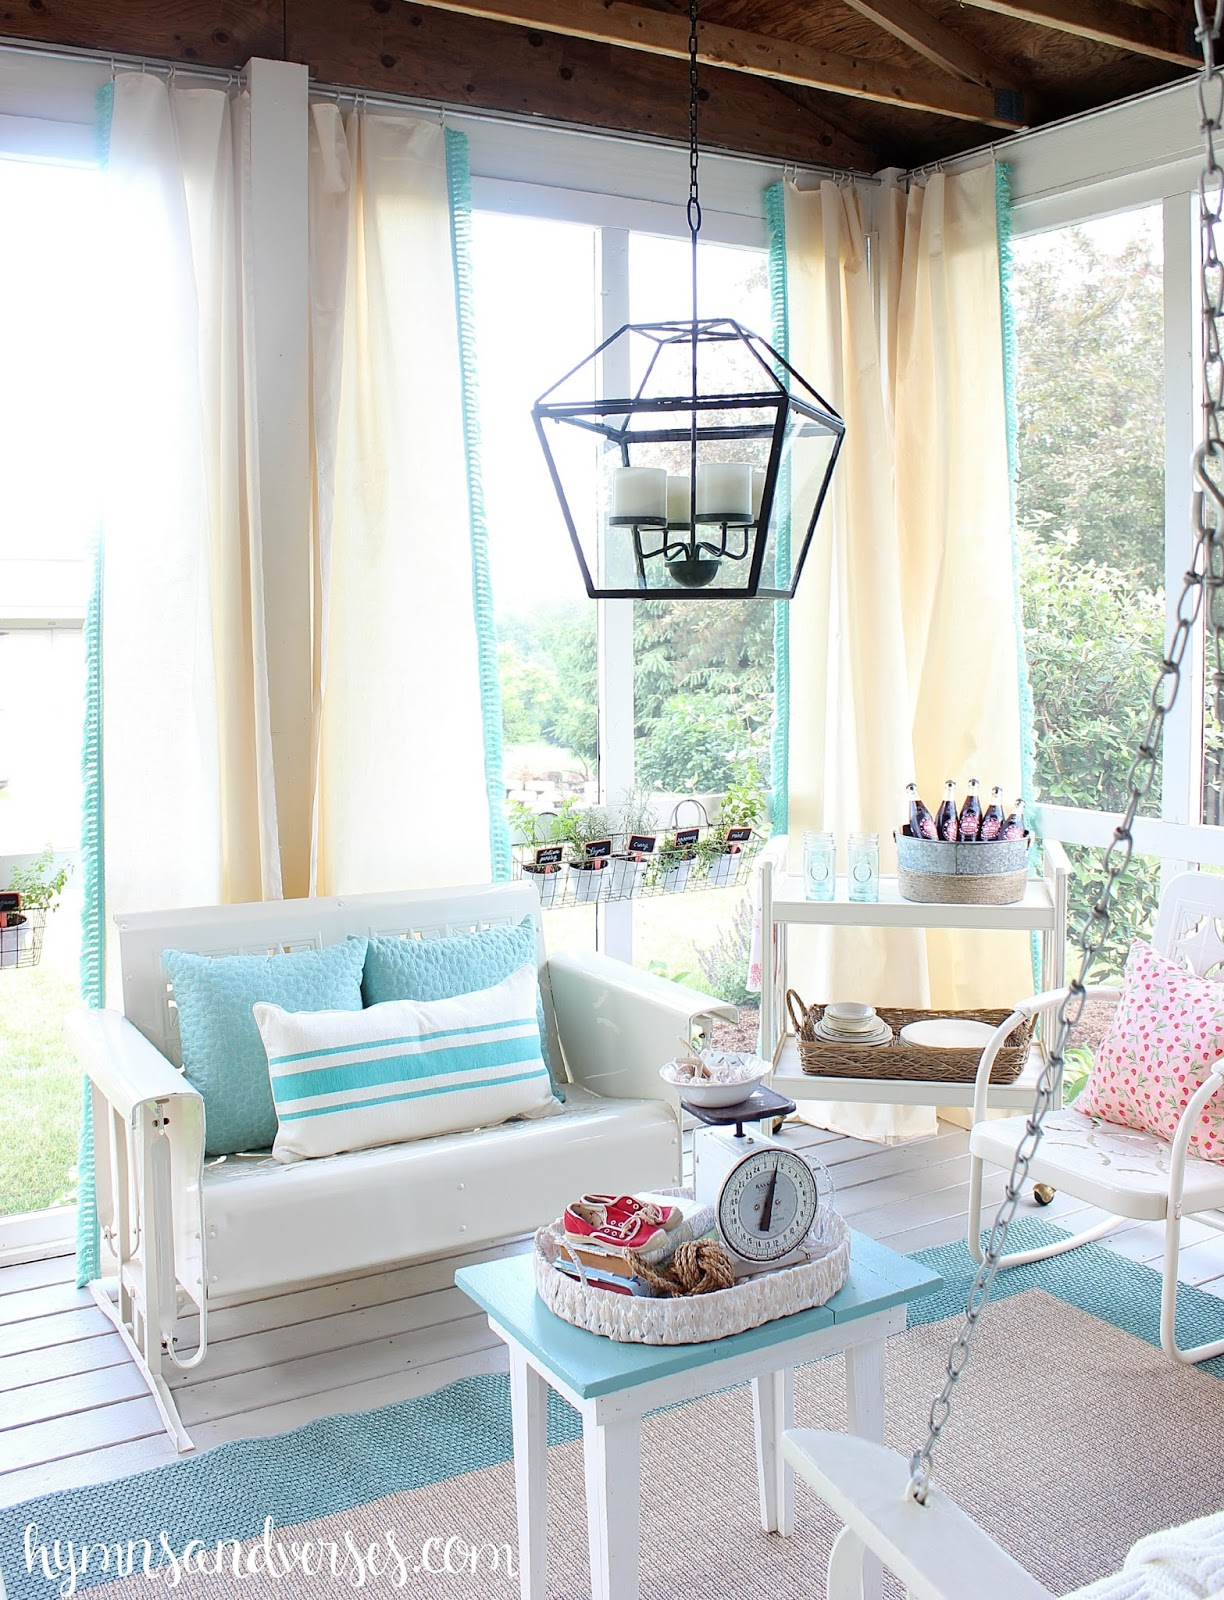 pictures decor designs porch french design decorating furniture kitchen inspiration beautiful of country style table pic unique a curtains new